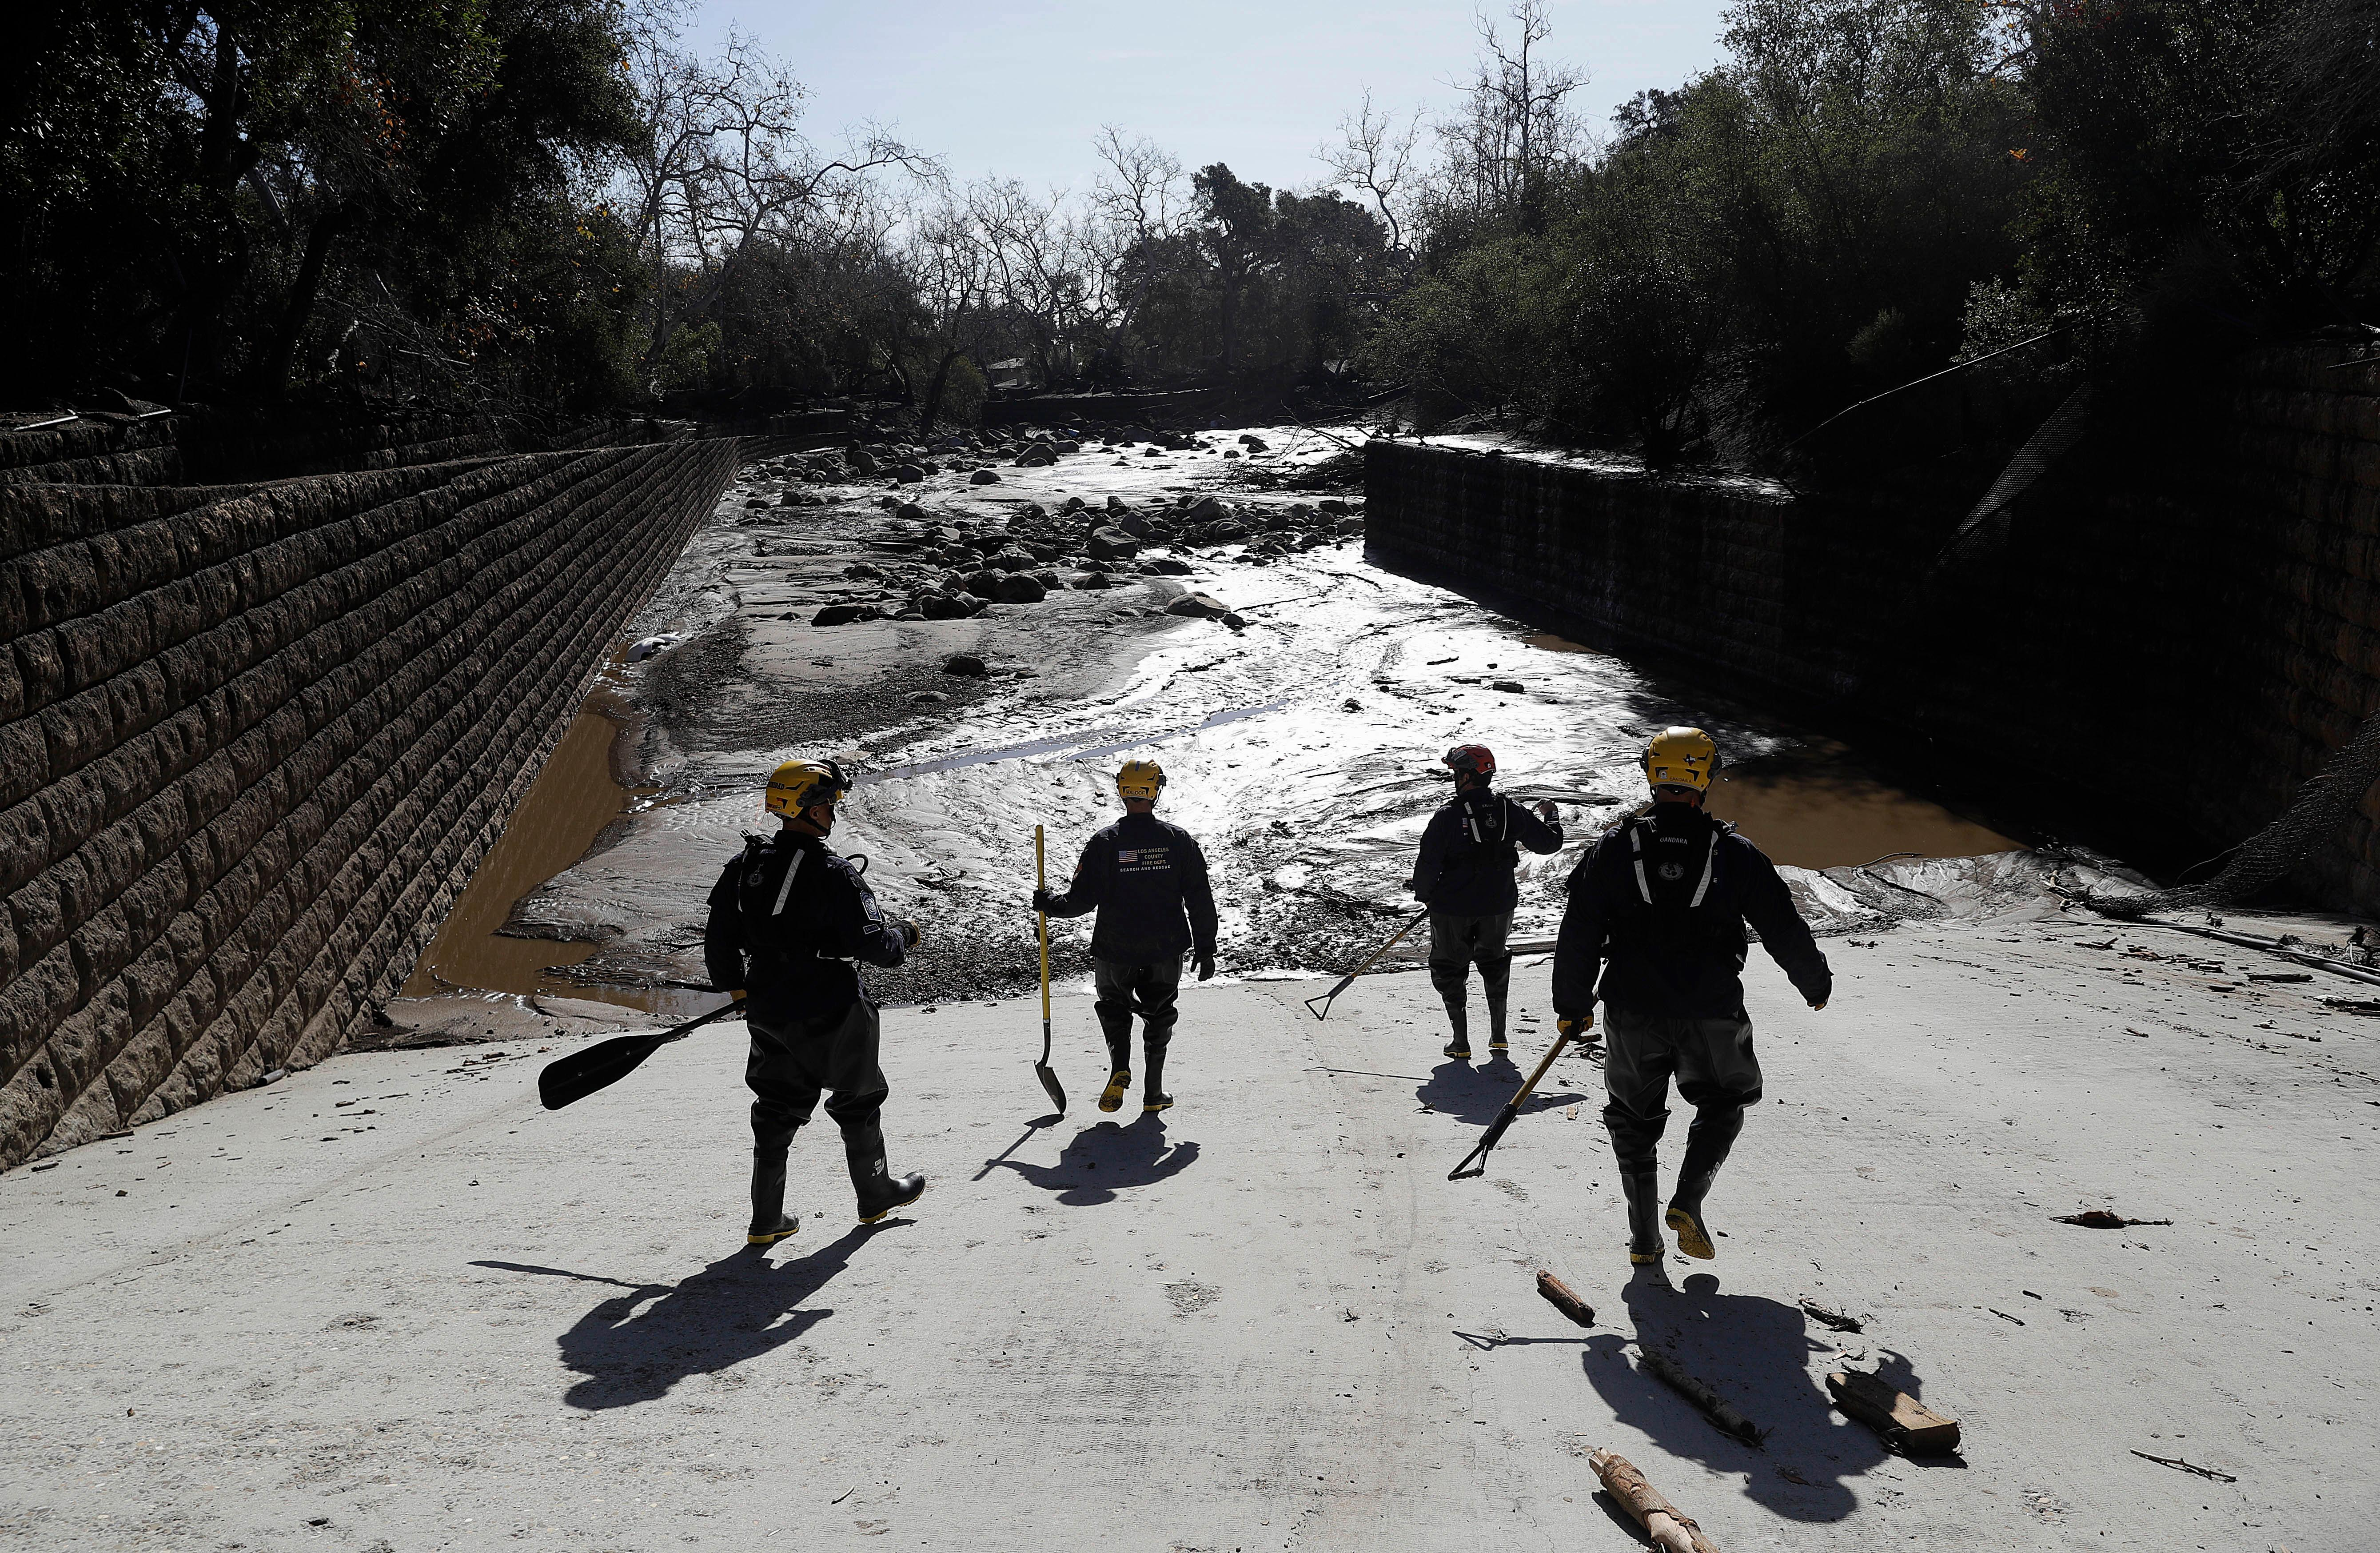 Members of the Los Angeles County Fire Department Search and Rescue crew walk toward flooded waters in Montecito, Calif., Wednesday, Jan. 10, 2018. Dozens of homes were swept away or heavily damaged and several people were killed Tuesday as downpours sent mud and boulders roaring down hills stripped of vegetation by a gigantic wildfire that raged in Southern California last month. (AP Photo/Marcio Jose Sanchez)